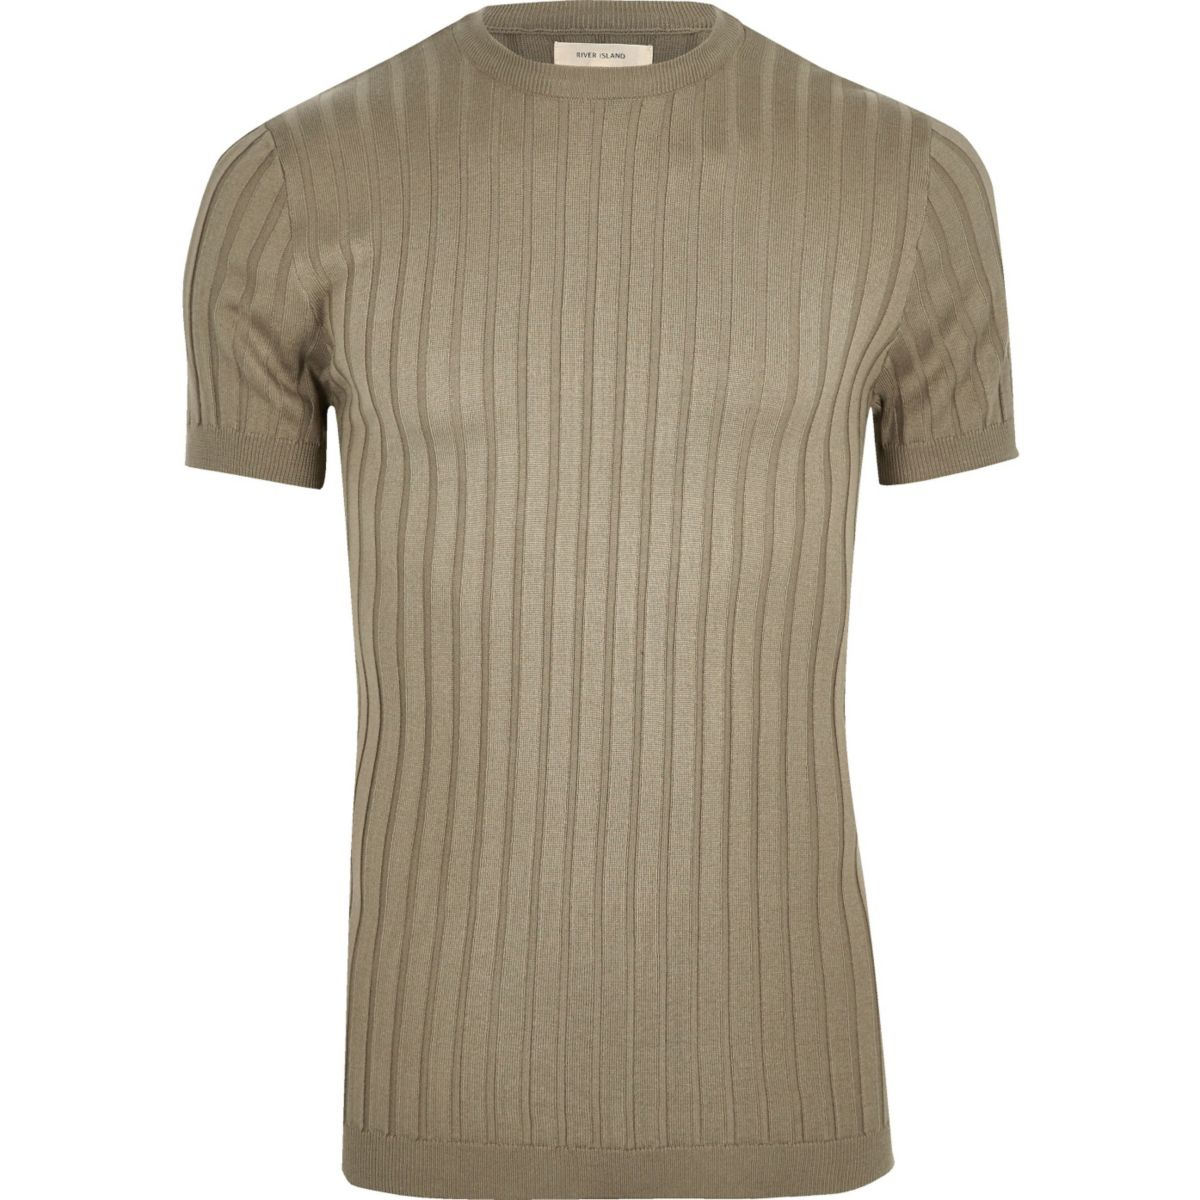 Green chunky ribbed muscle fit T-shirt